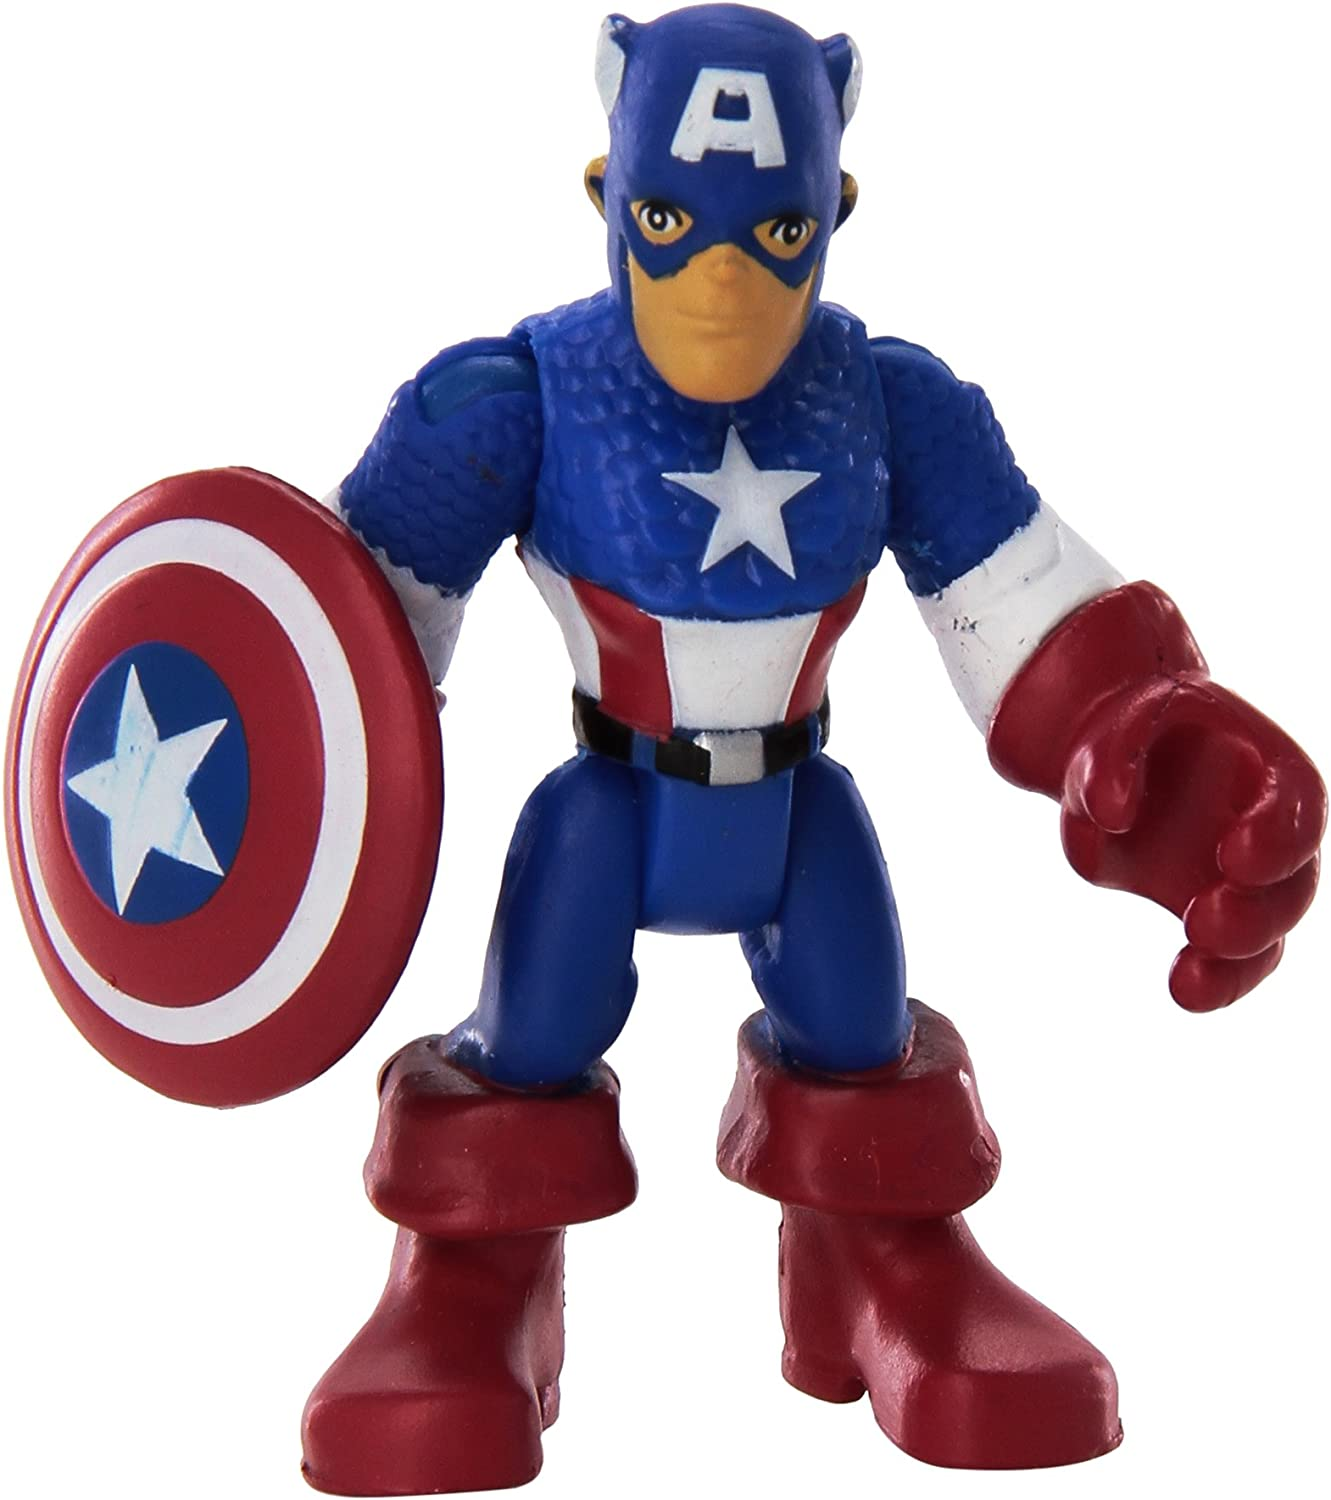 PLAYSKOOL HEROES MARVEL SUPER HERO ADVENTURES CAPTAIN AMERICA /& MARVEL/'S FALCON